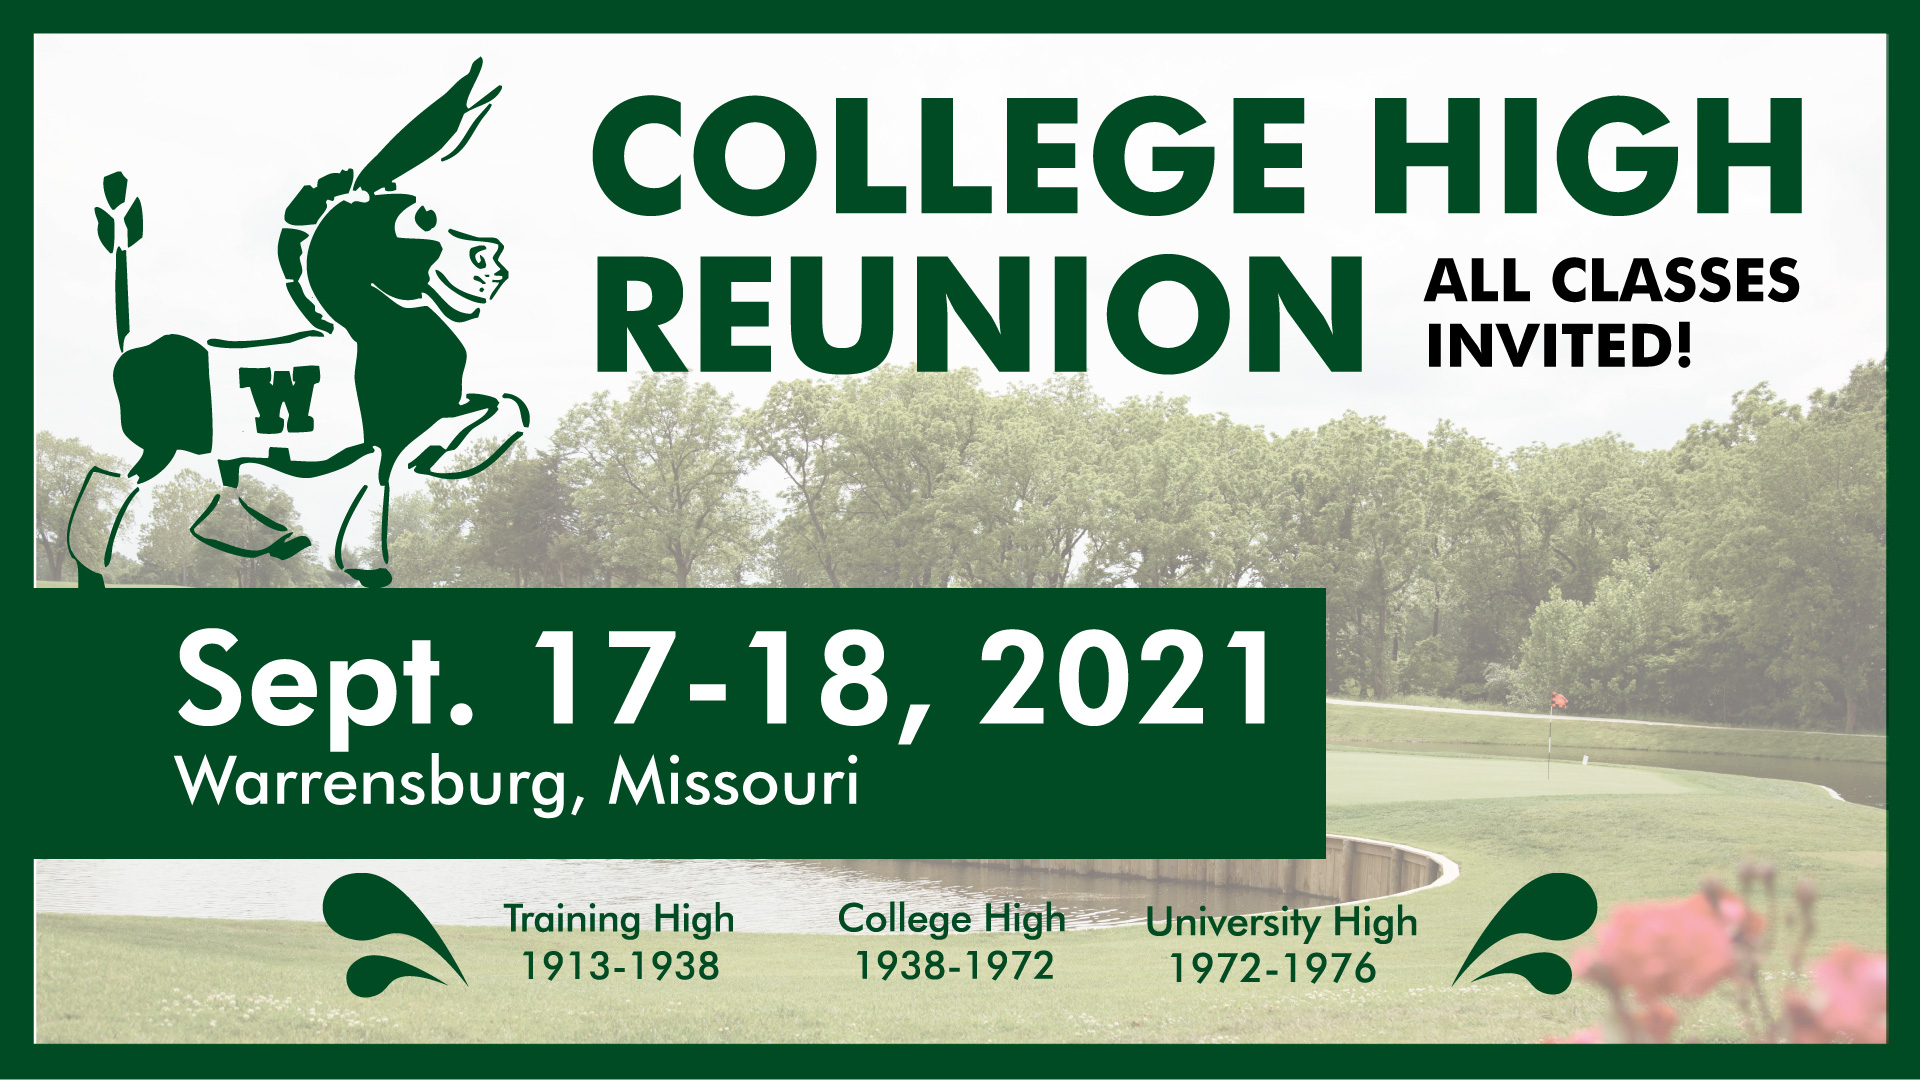 College High FB event